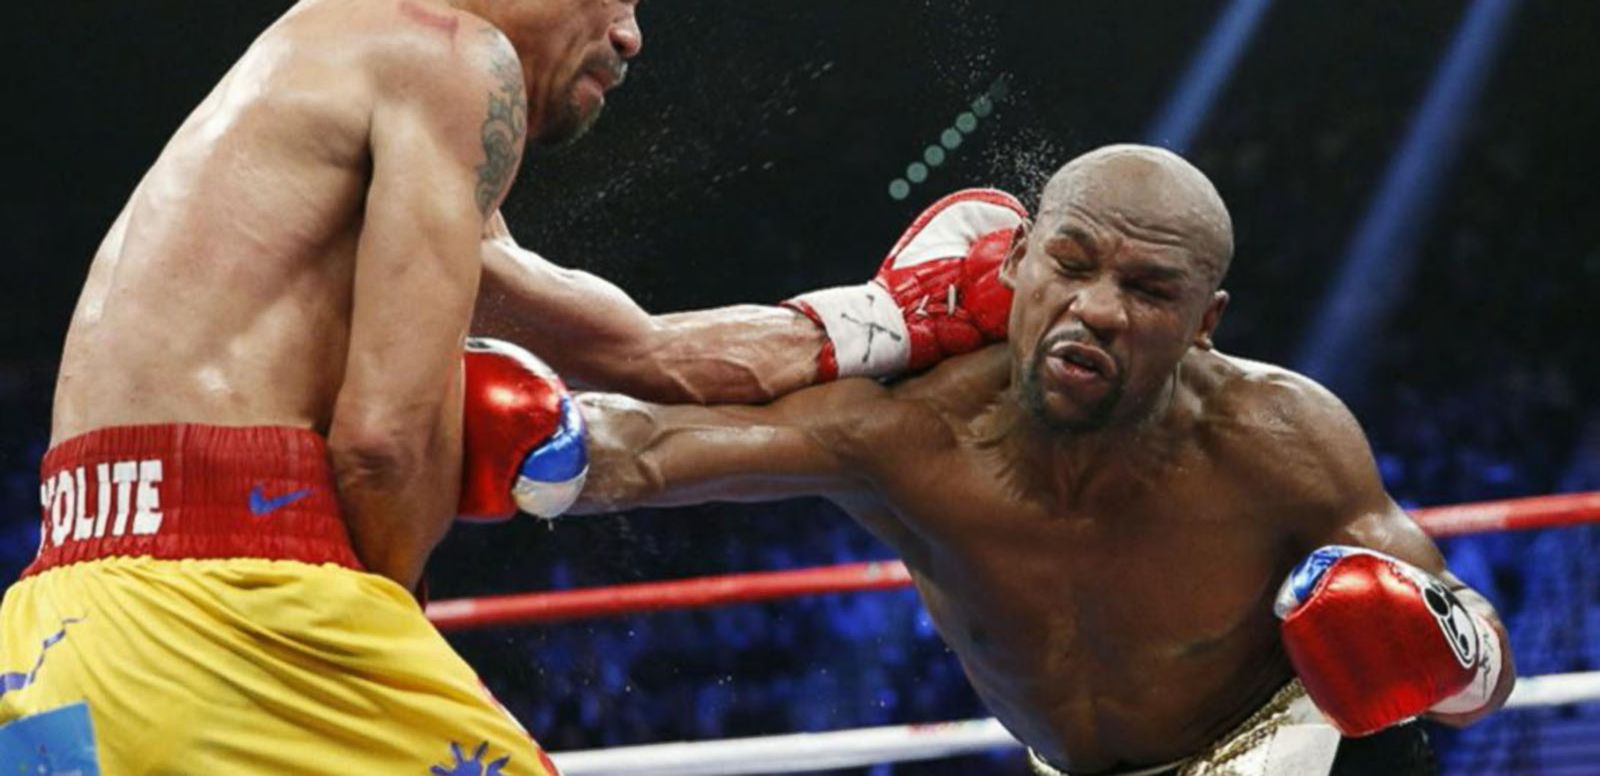 Fallout from Mayweather-Pacquiao Bout